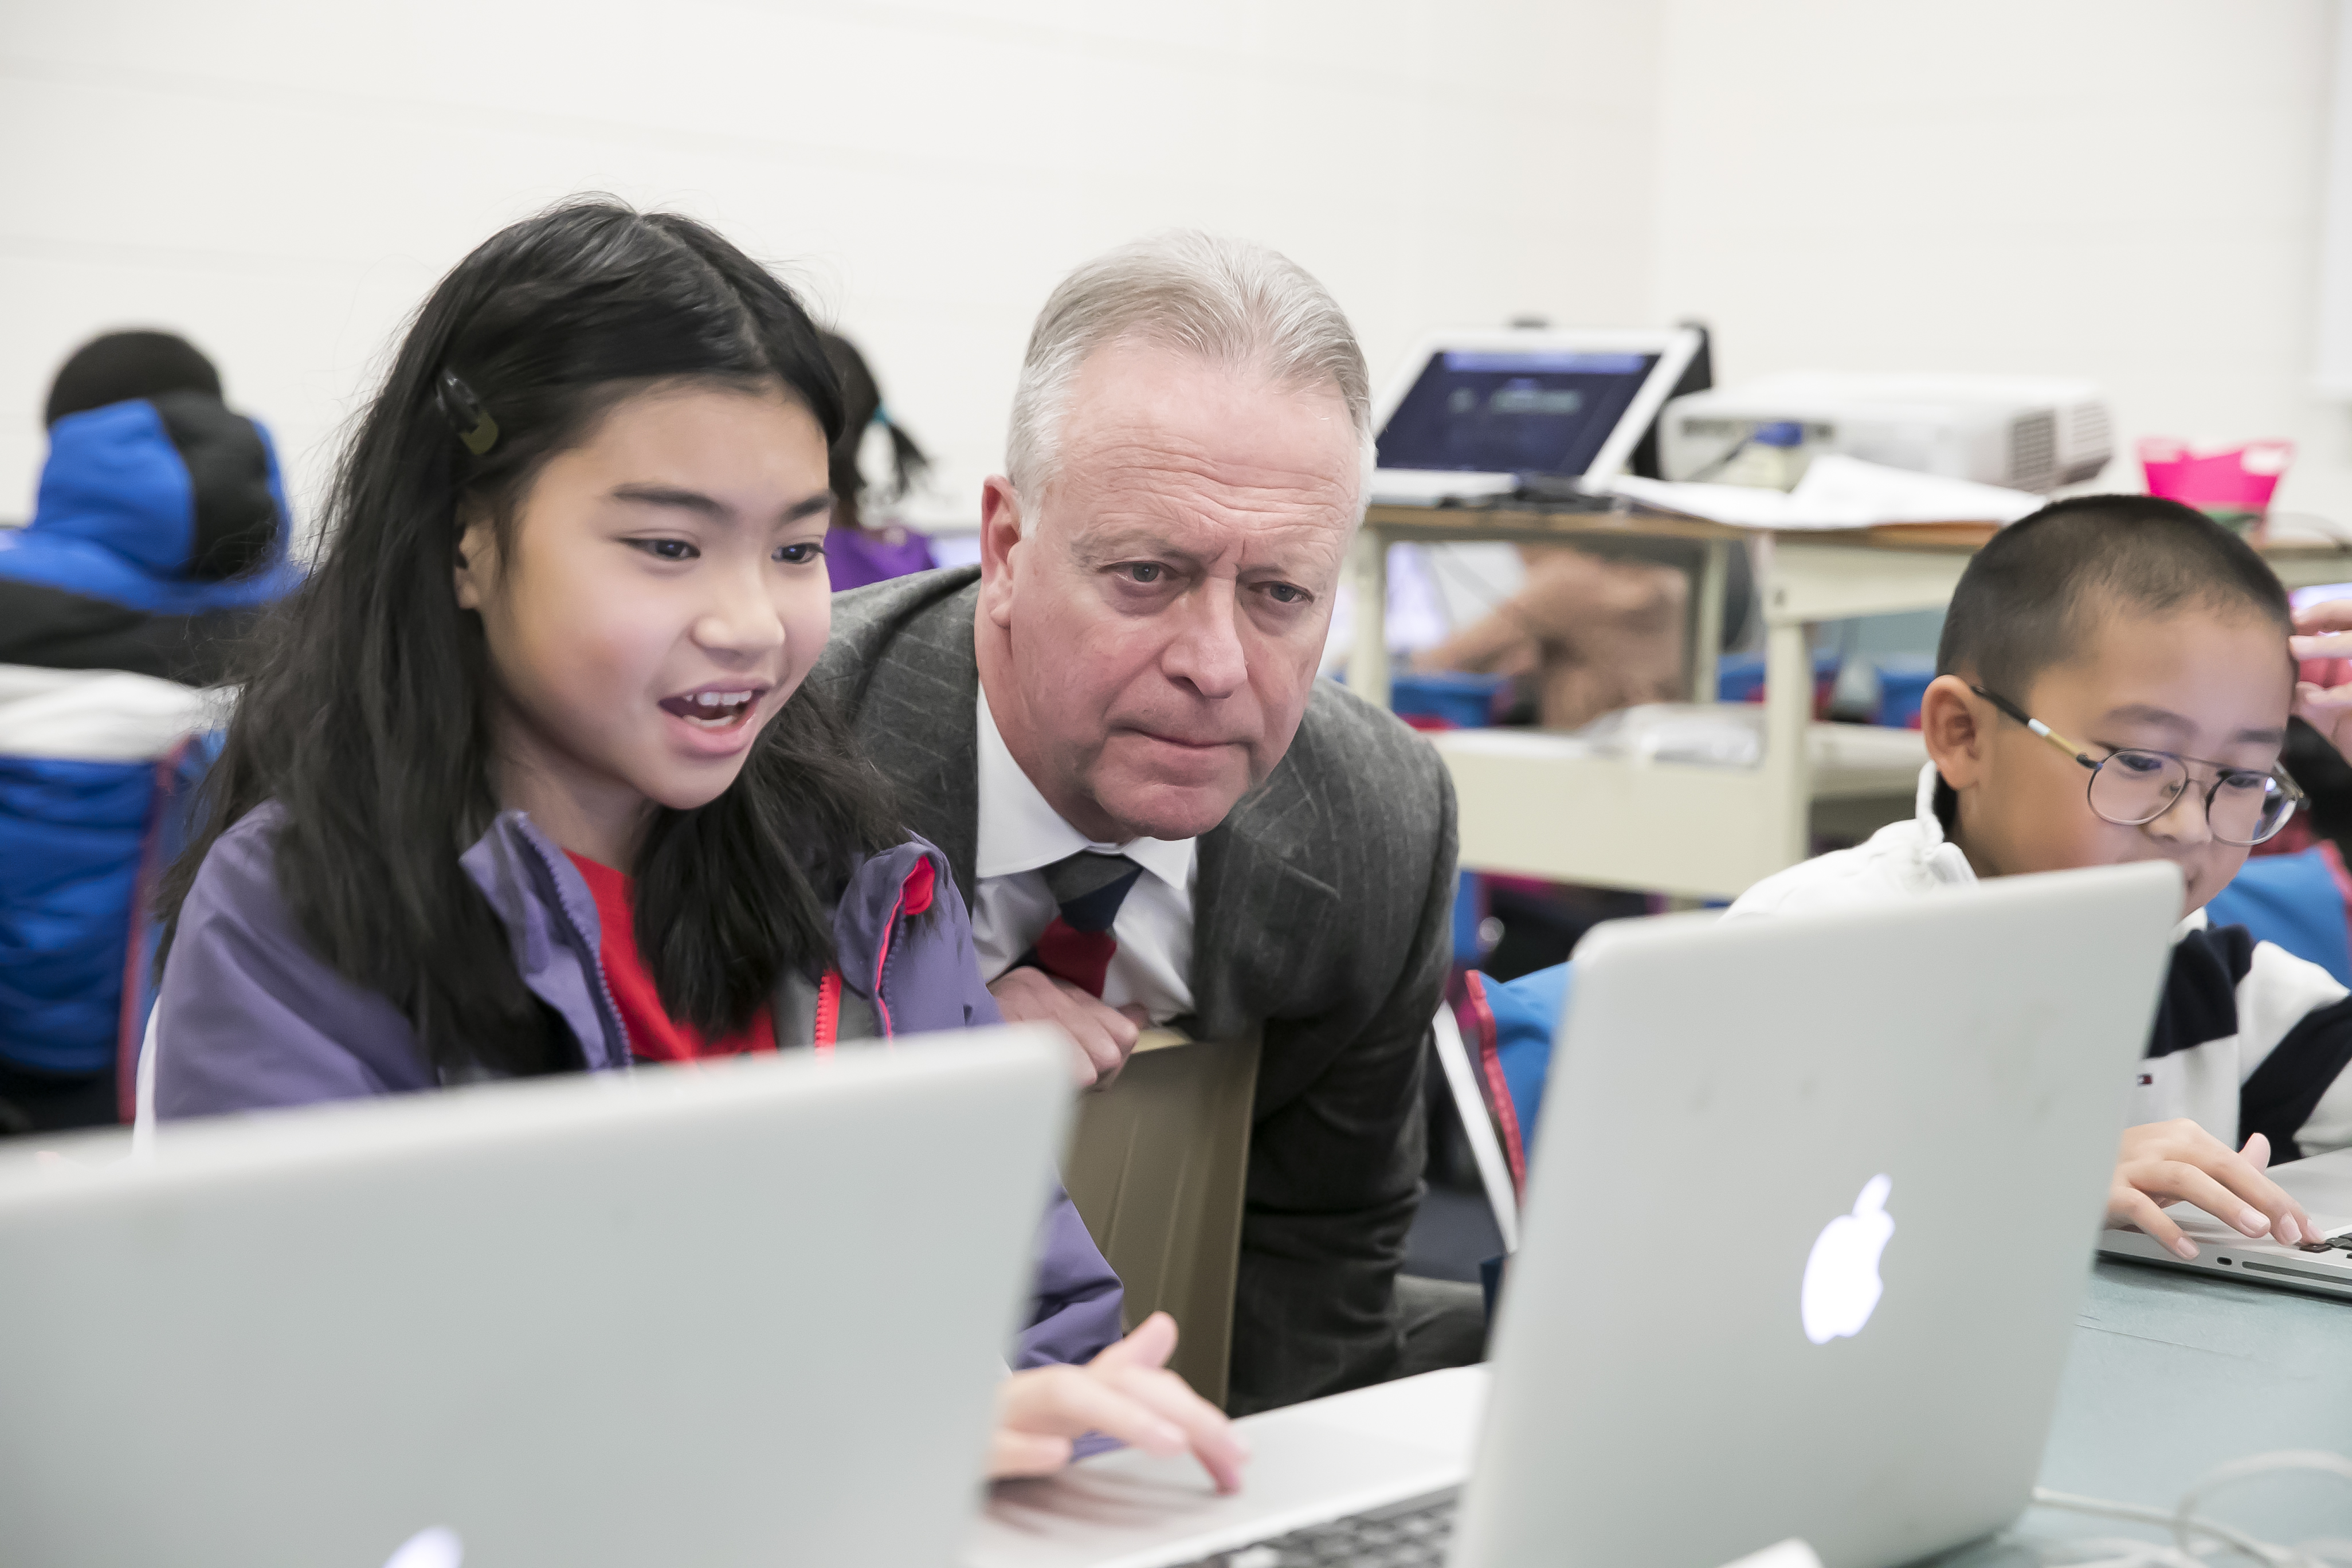 For the coming school year, Superintendent Michael Martirano and his team are developing several options for instruction and working to keep the community updated on all possibilities.